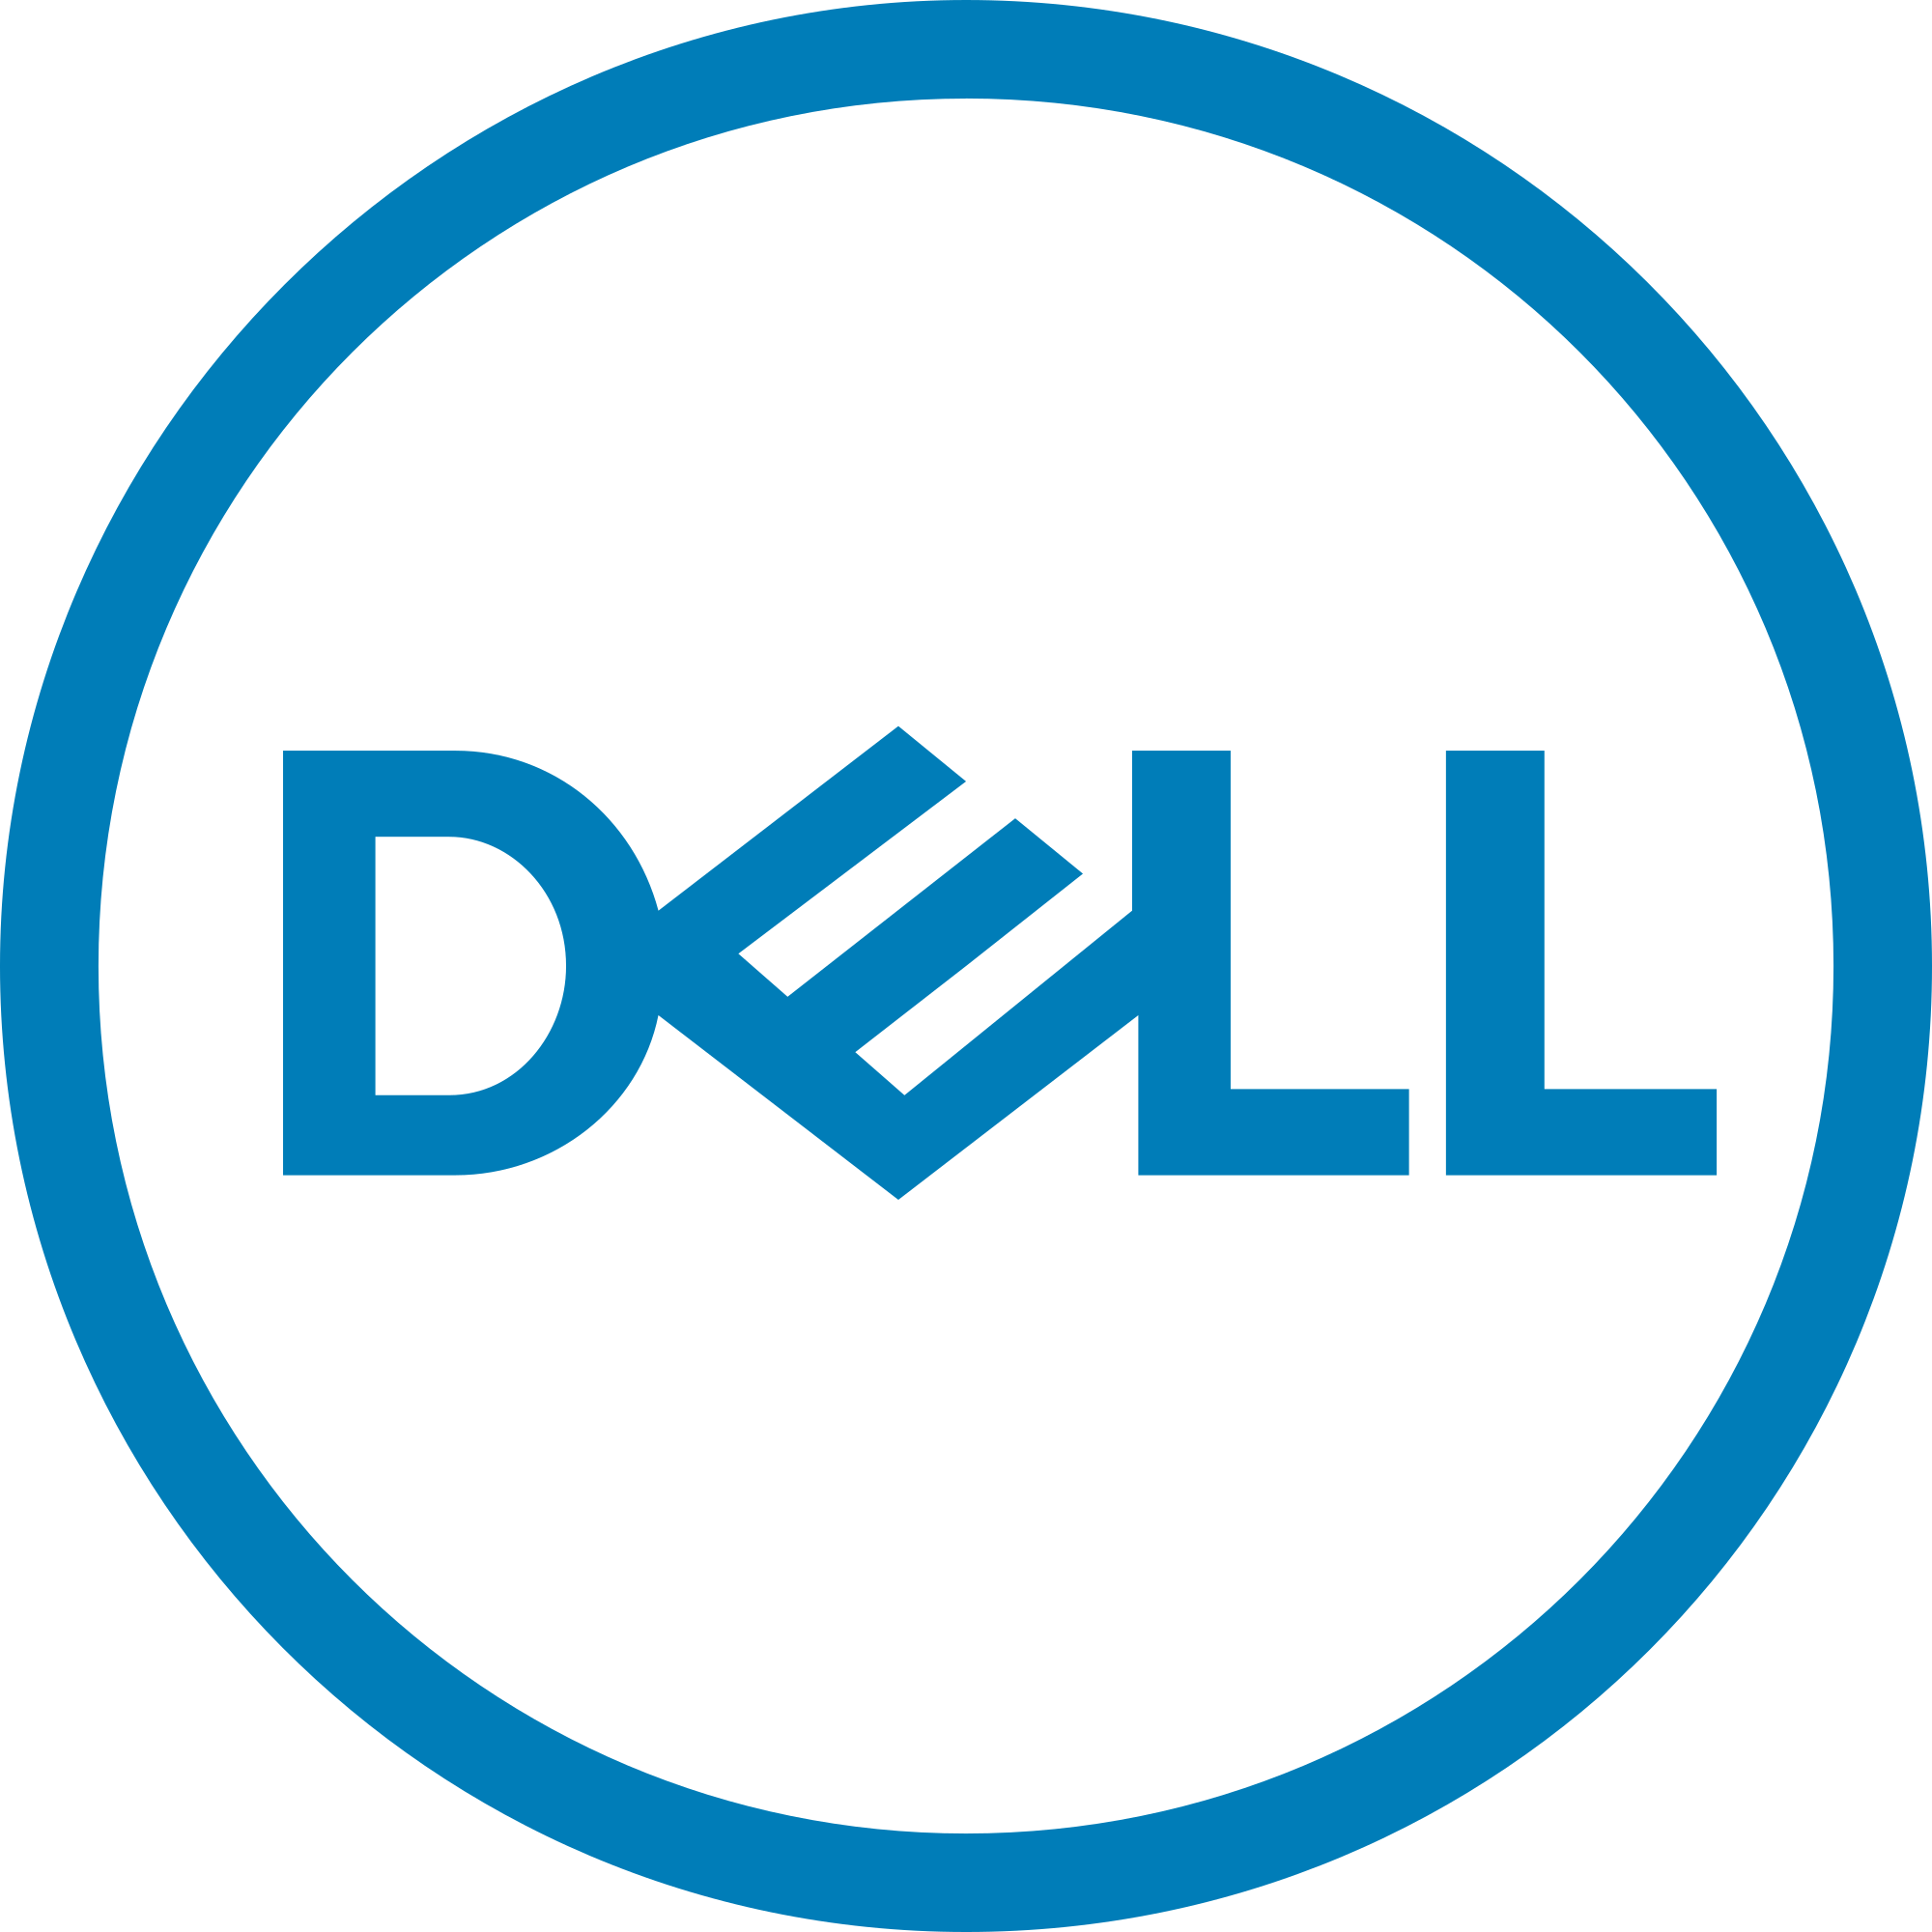 DELL 2016 logo vector